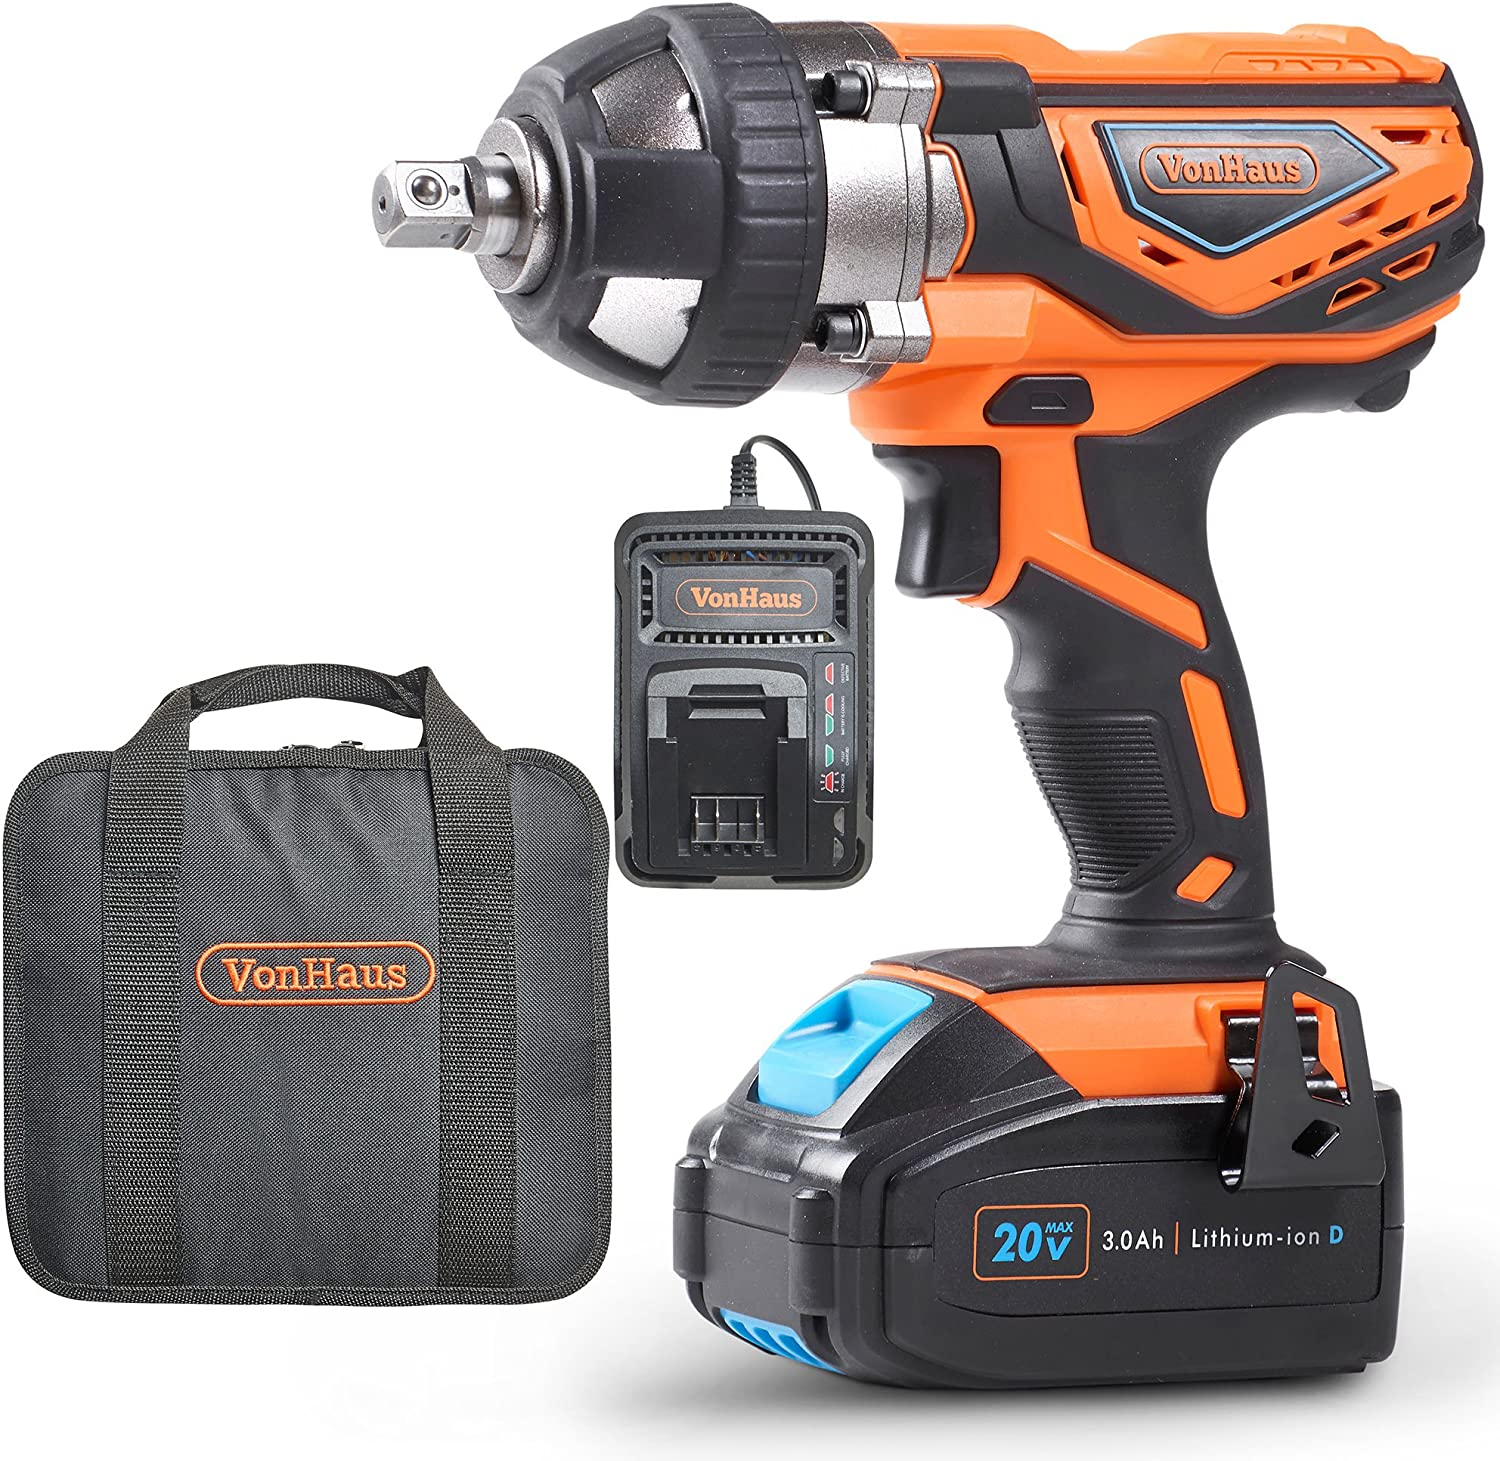 VonHaus 9100012 High Torque Impact Wrench with Variable Speed